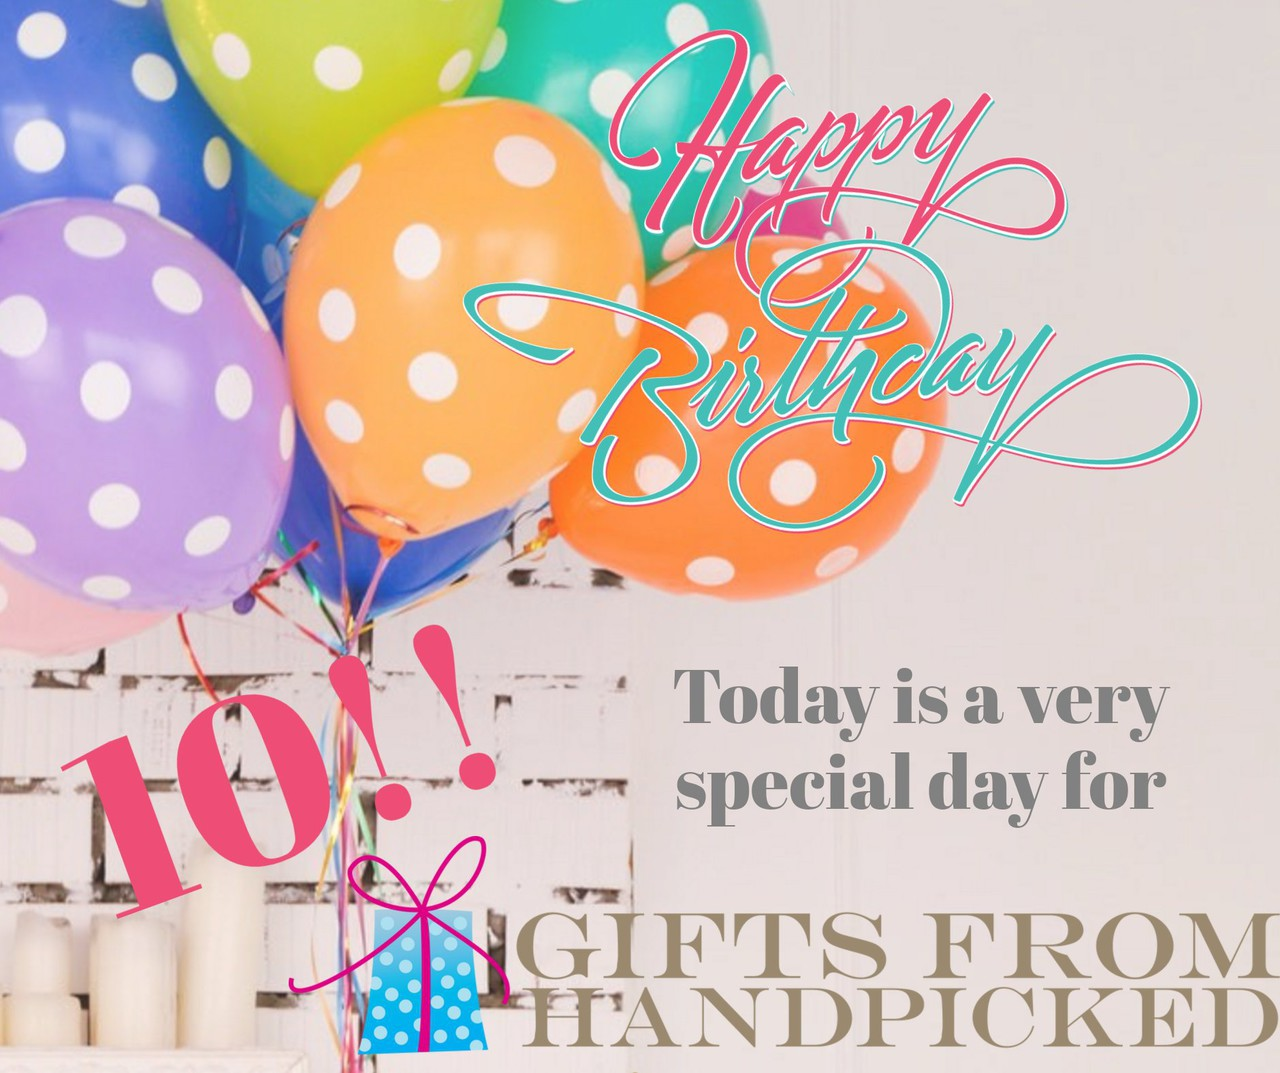 Gifts From Handpicked is 10 today!